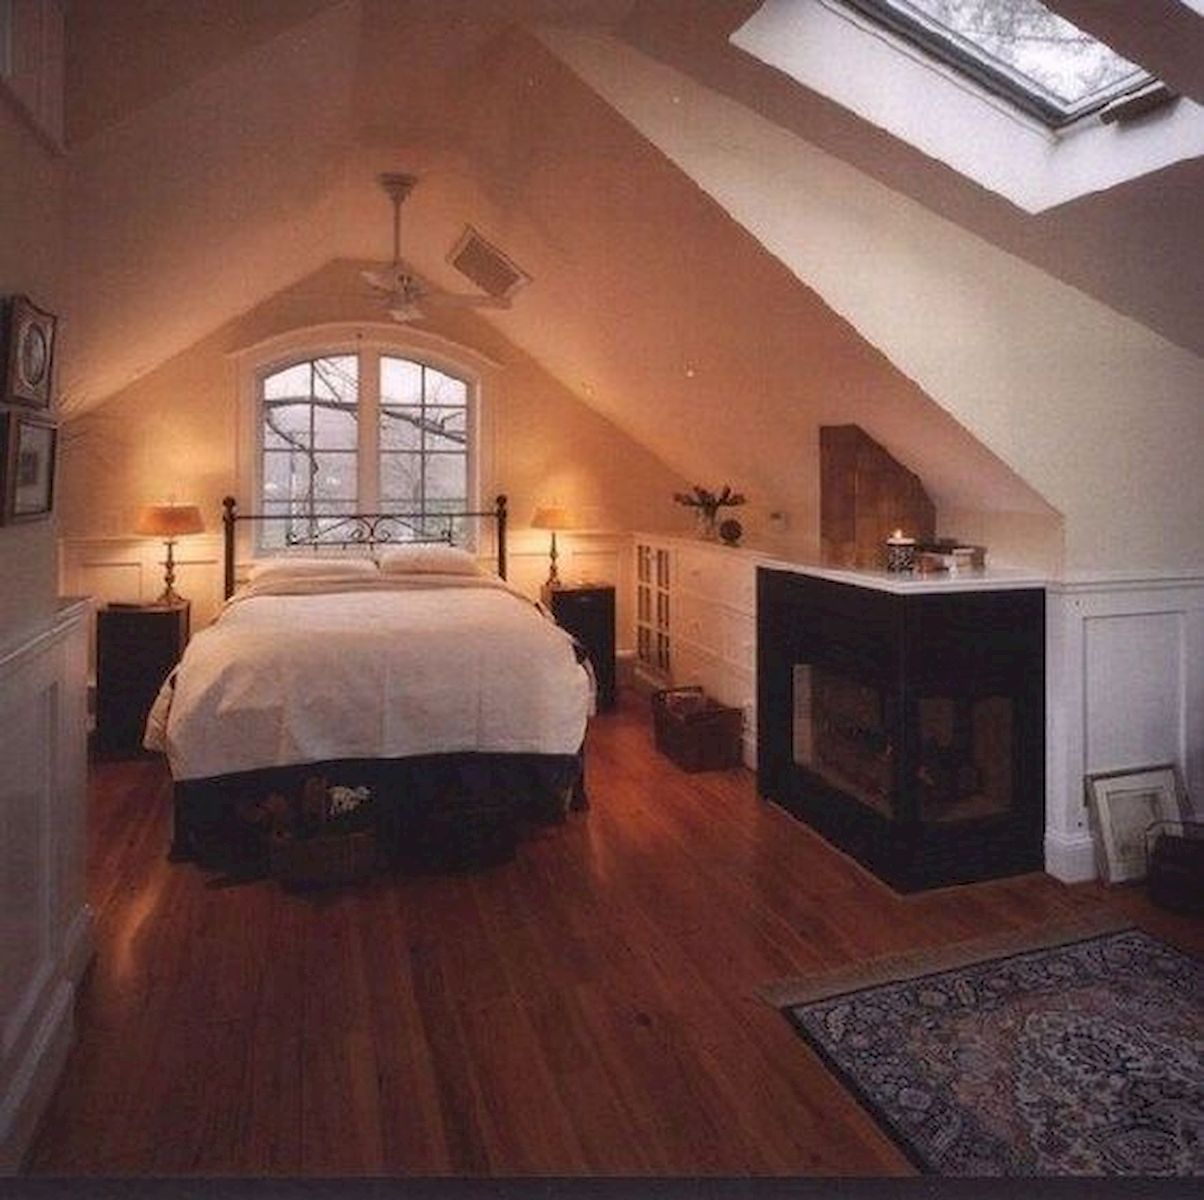 40 Awesome Attic Bedroom Design and Decorating Ideas (3)